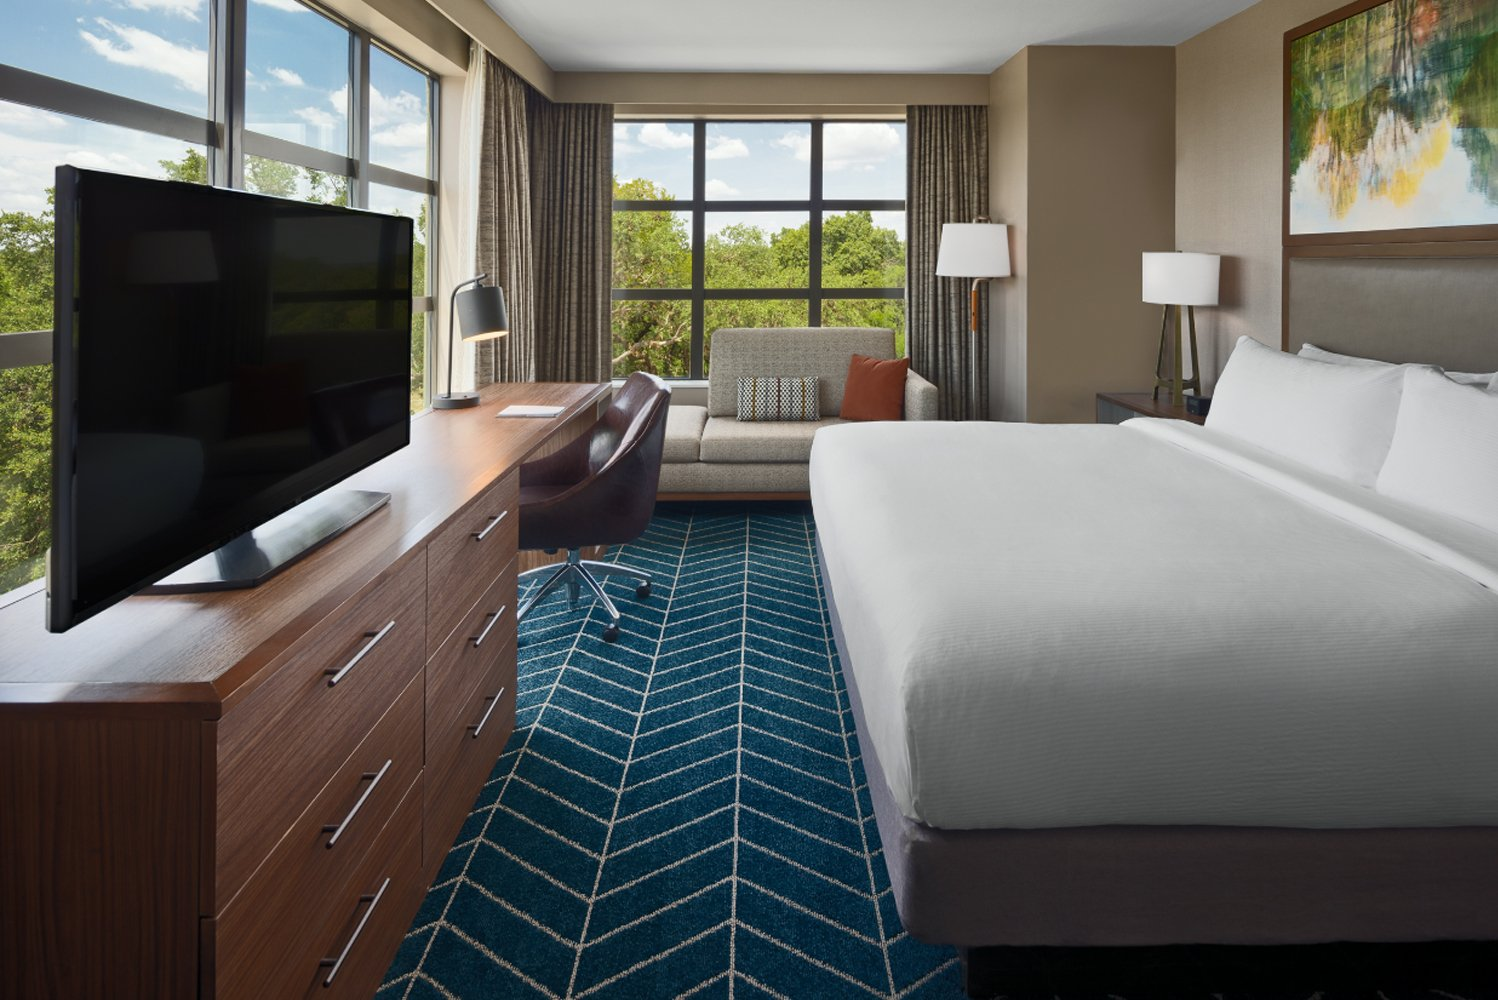 The Bevy Hotel Boerne, a DoubleTree by Hilton, has opened in Texas.